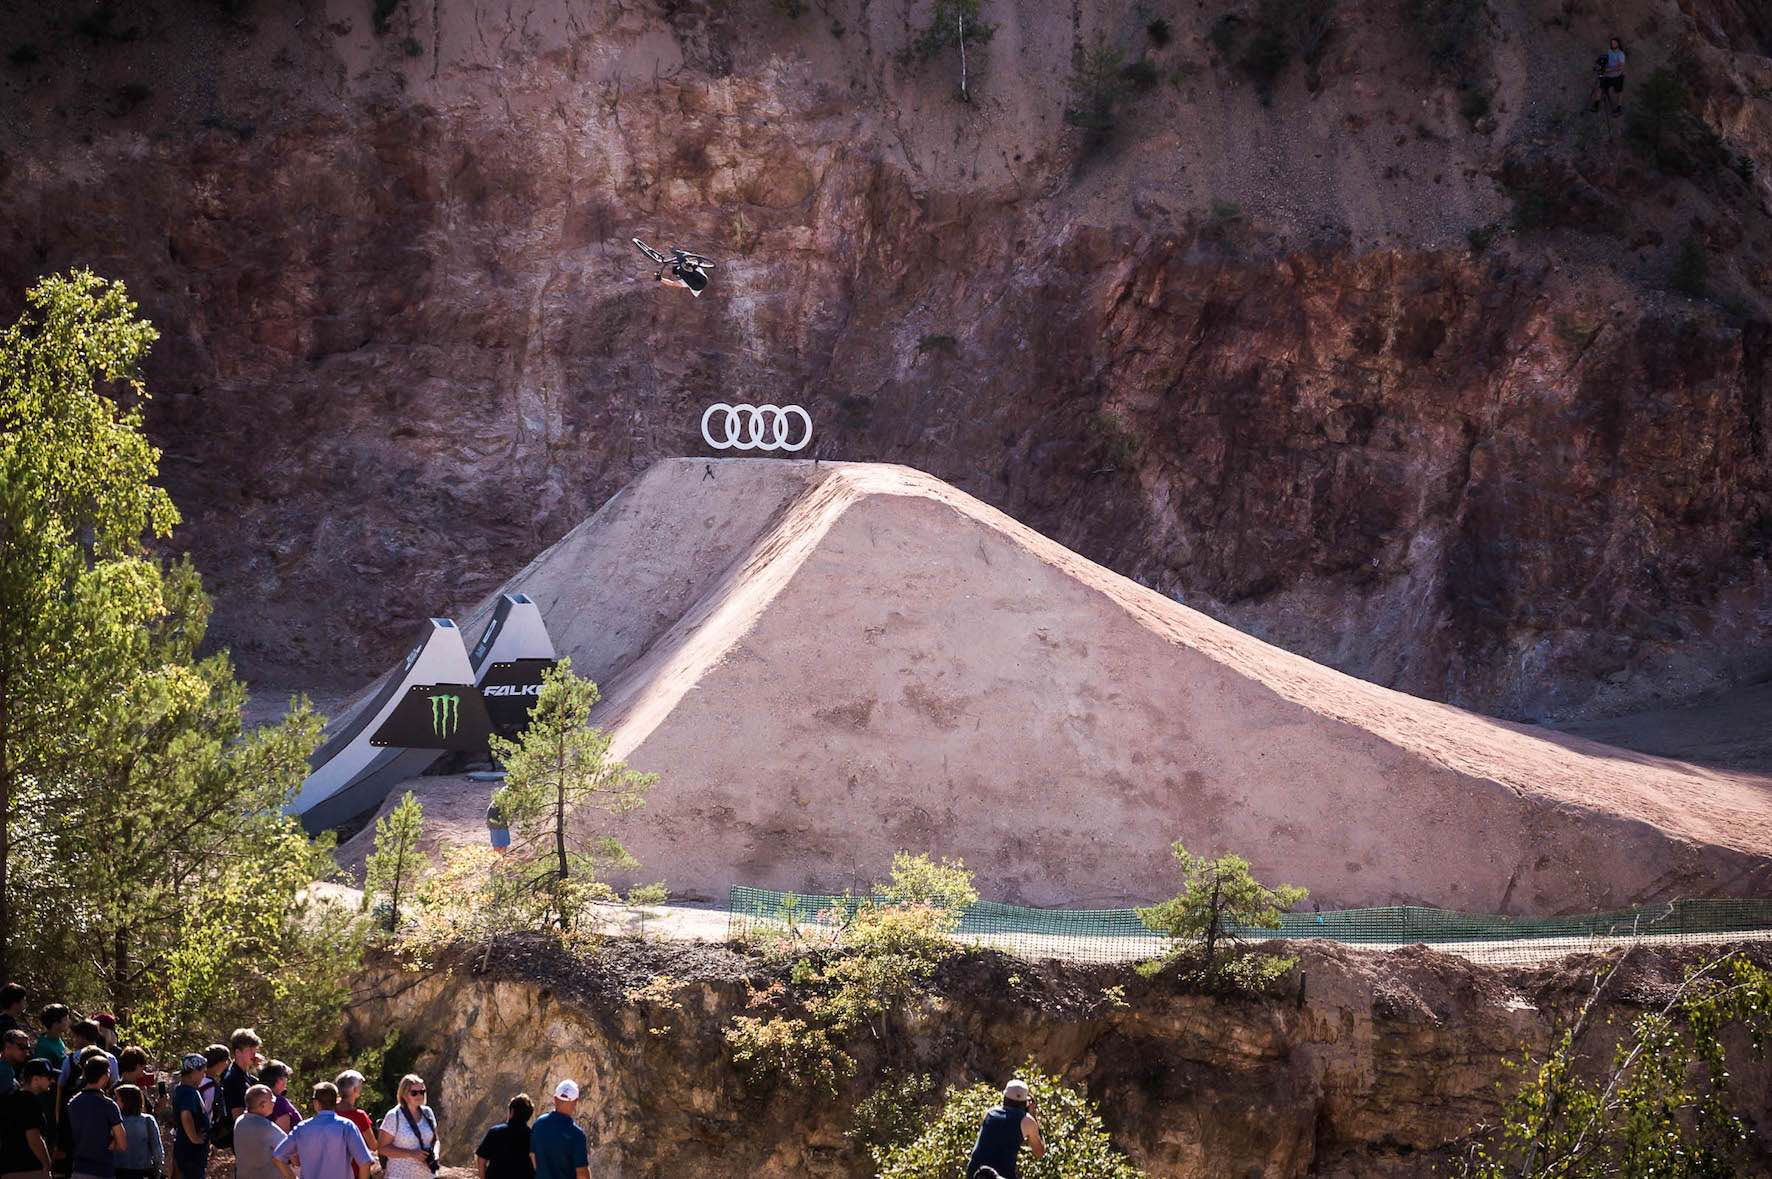 Max Fredriksson sessions the Big Air jump at Audi Nines